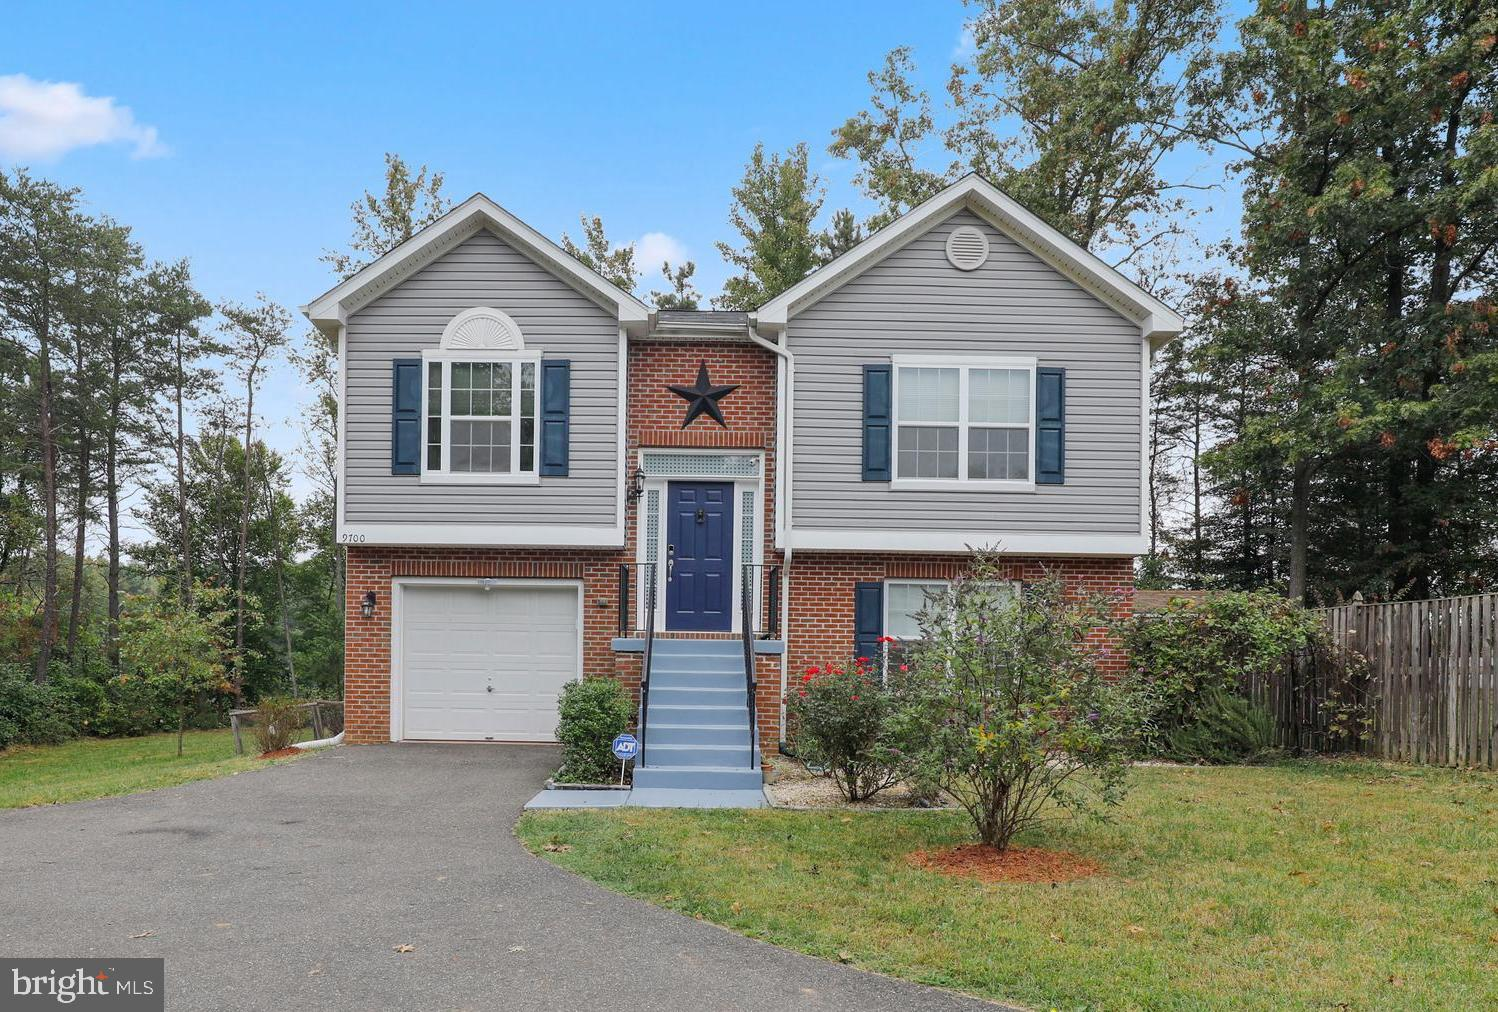 Wow just wow! This pristine, tranquil home is located in a private enclave with direct access to an